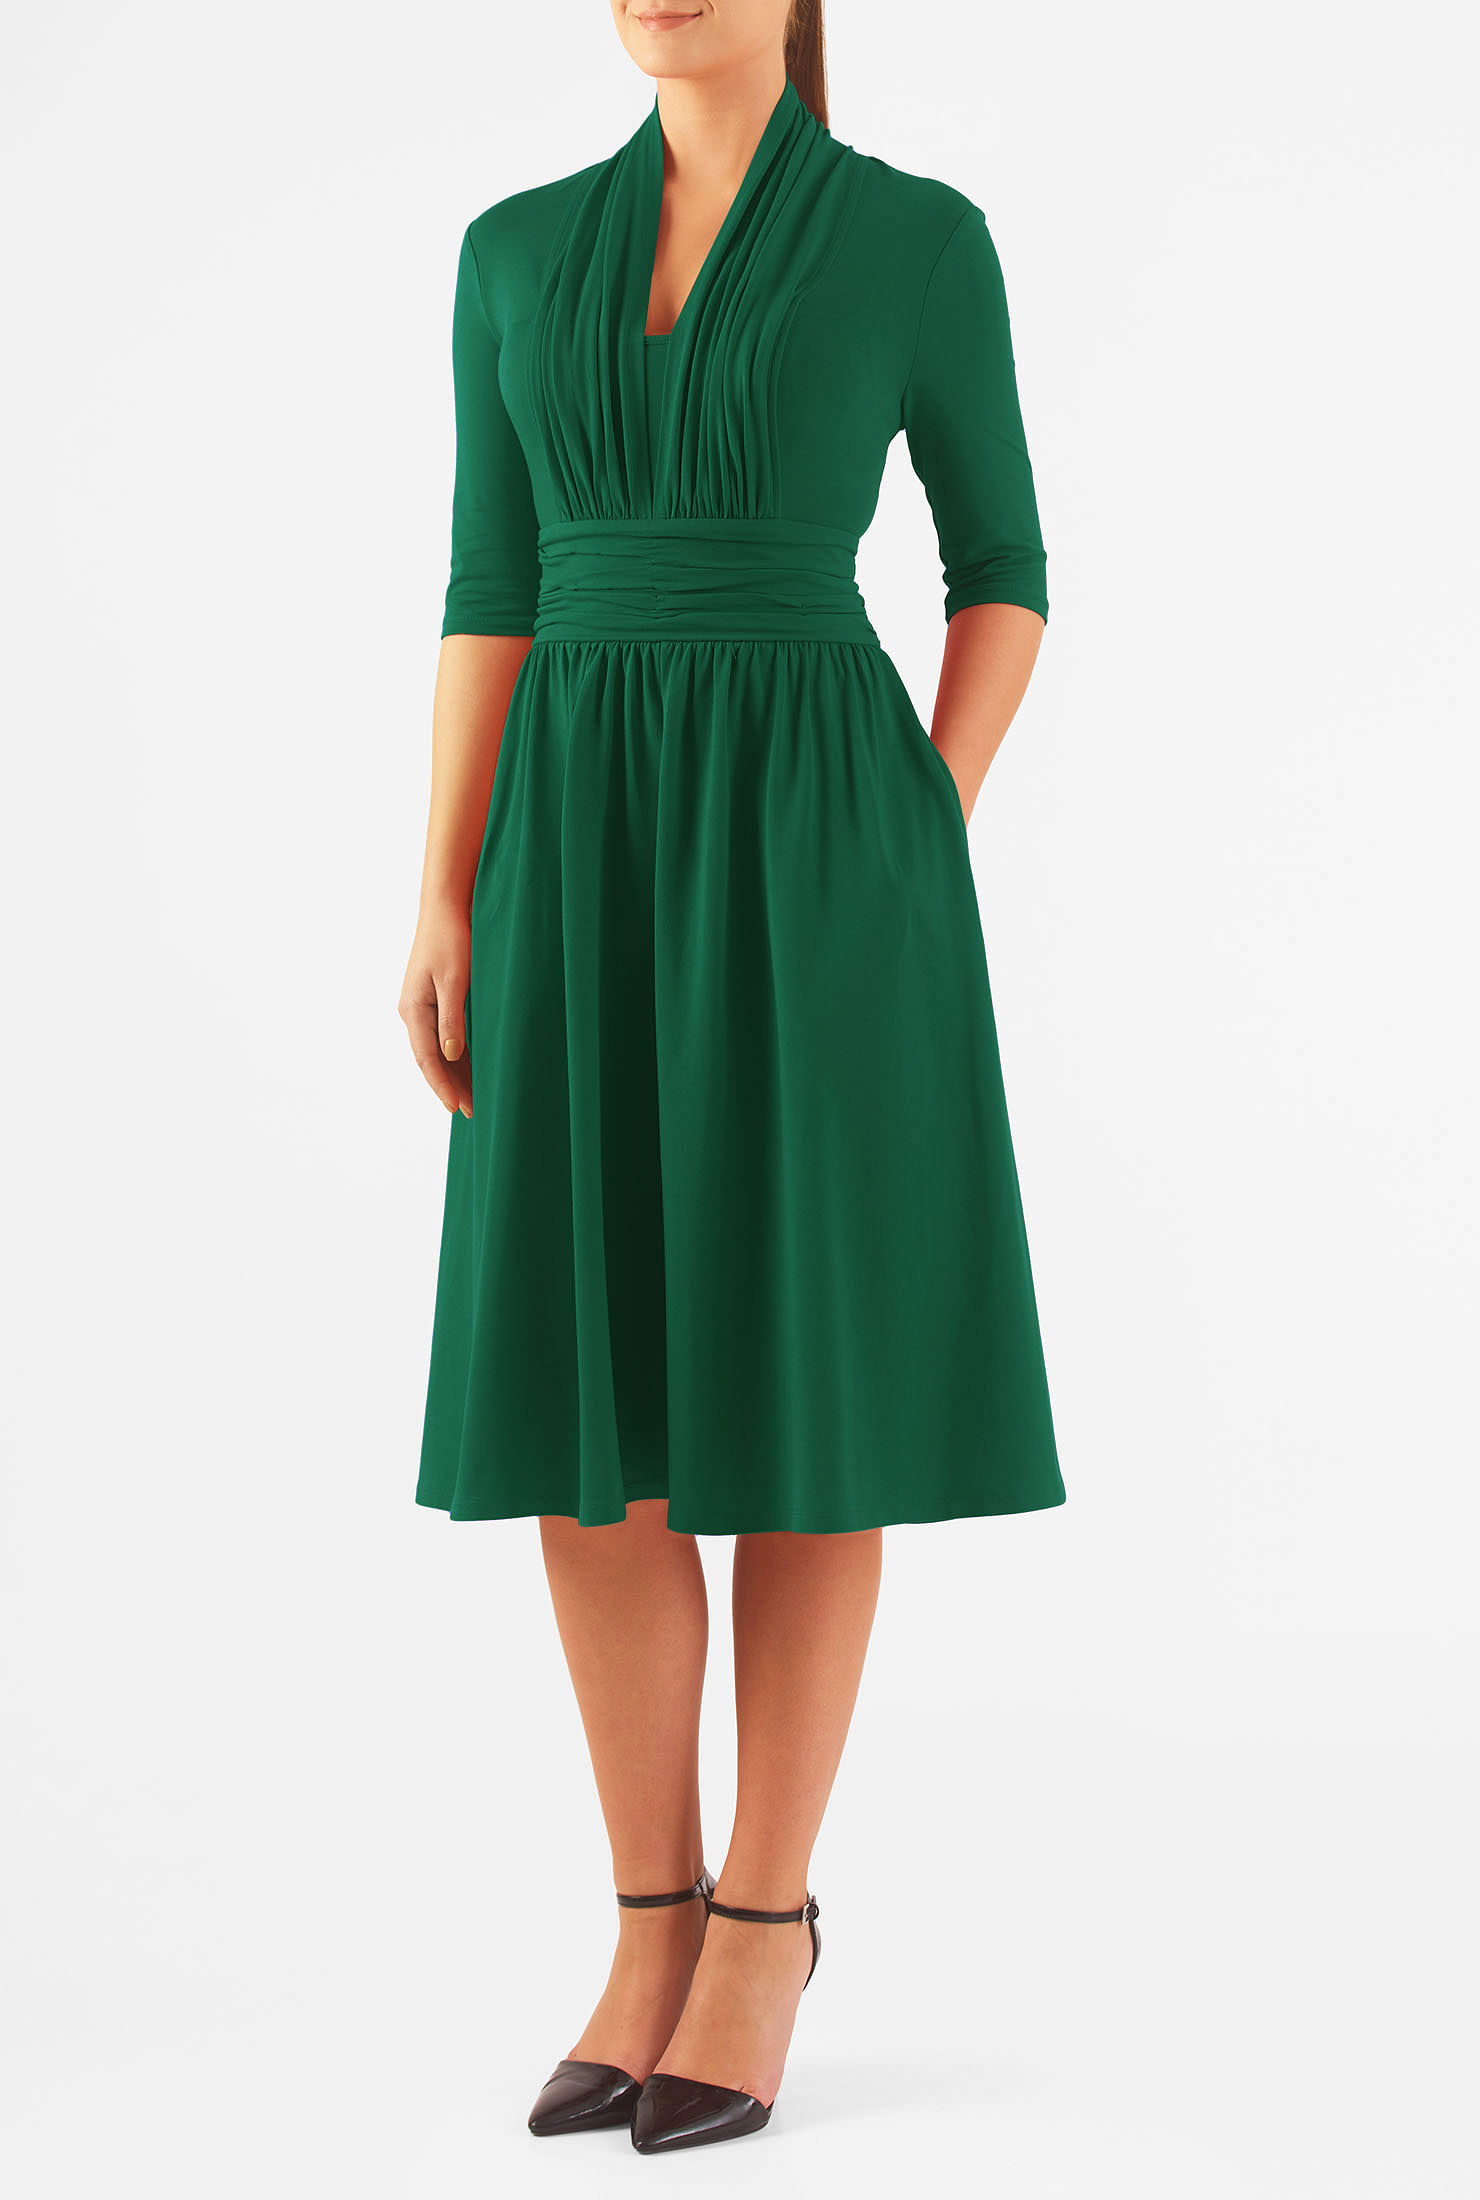 Jersey Knit Casual Dresses: piserialajax.cf - Your Online Dresses Store! Get 5% in rewards with Club O!